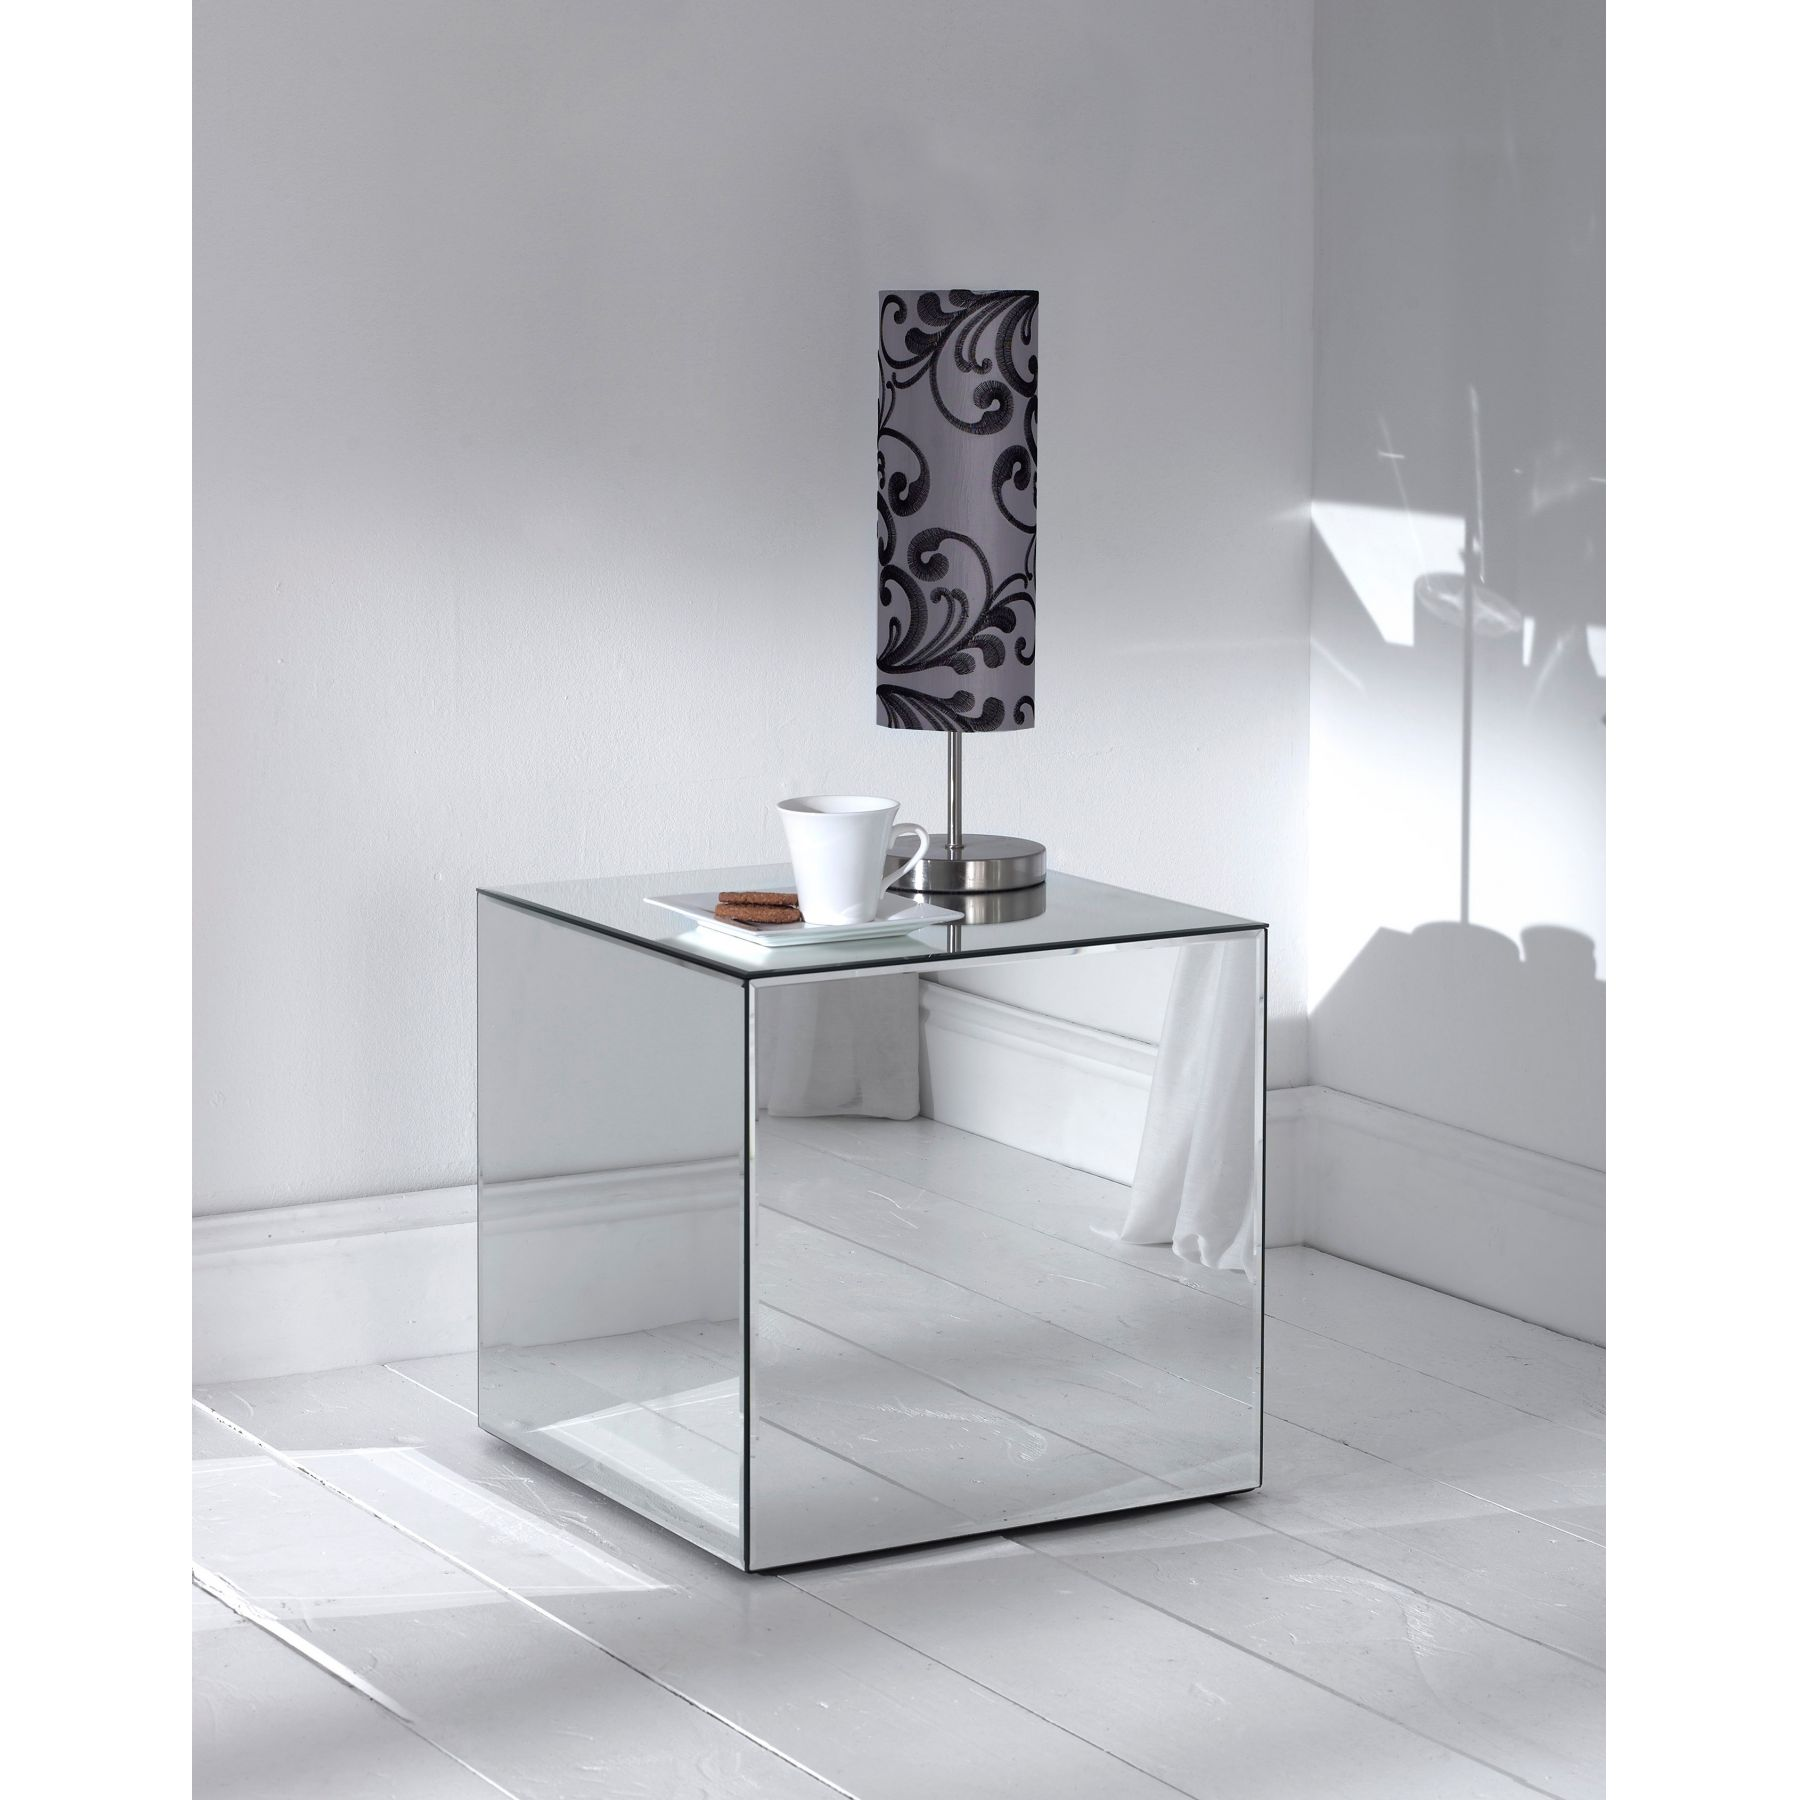 furniture accessories unique modern mirrored glass accent table cube shaped laminate mirror side with polished wood bedroom flooring and tube steel lamp drawer unusual ellen allen